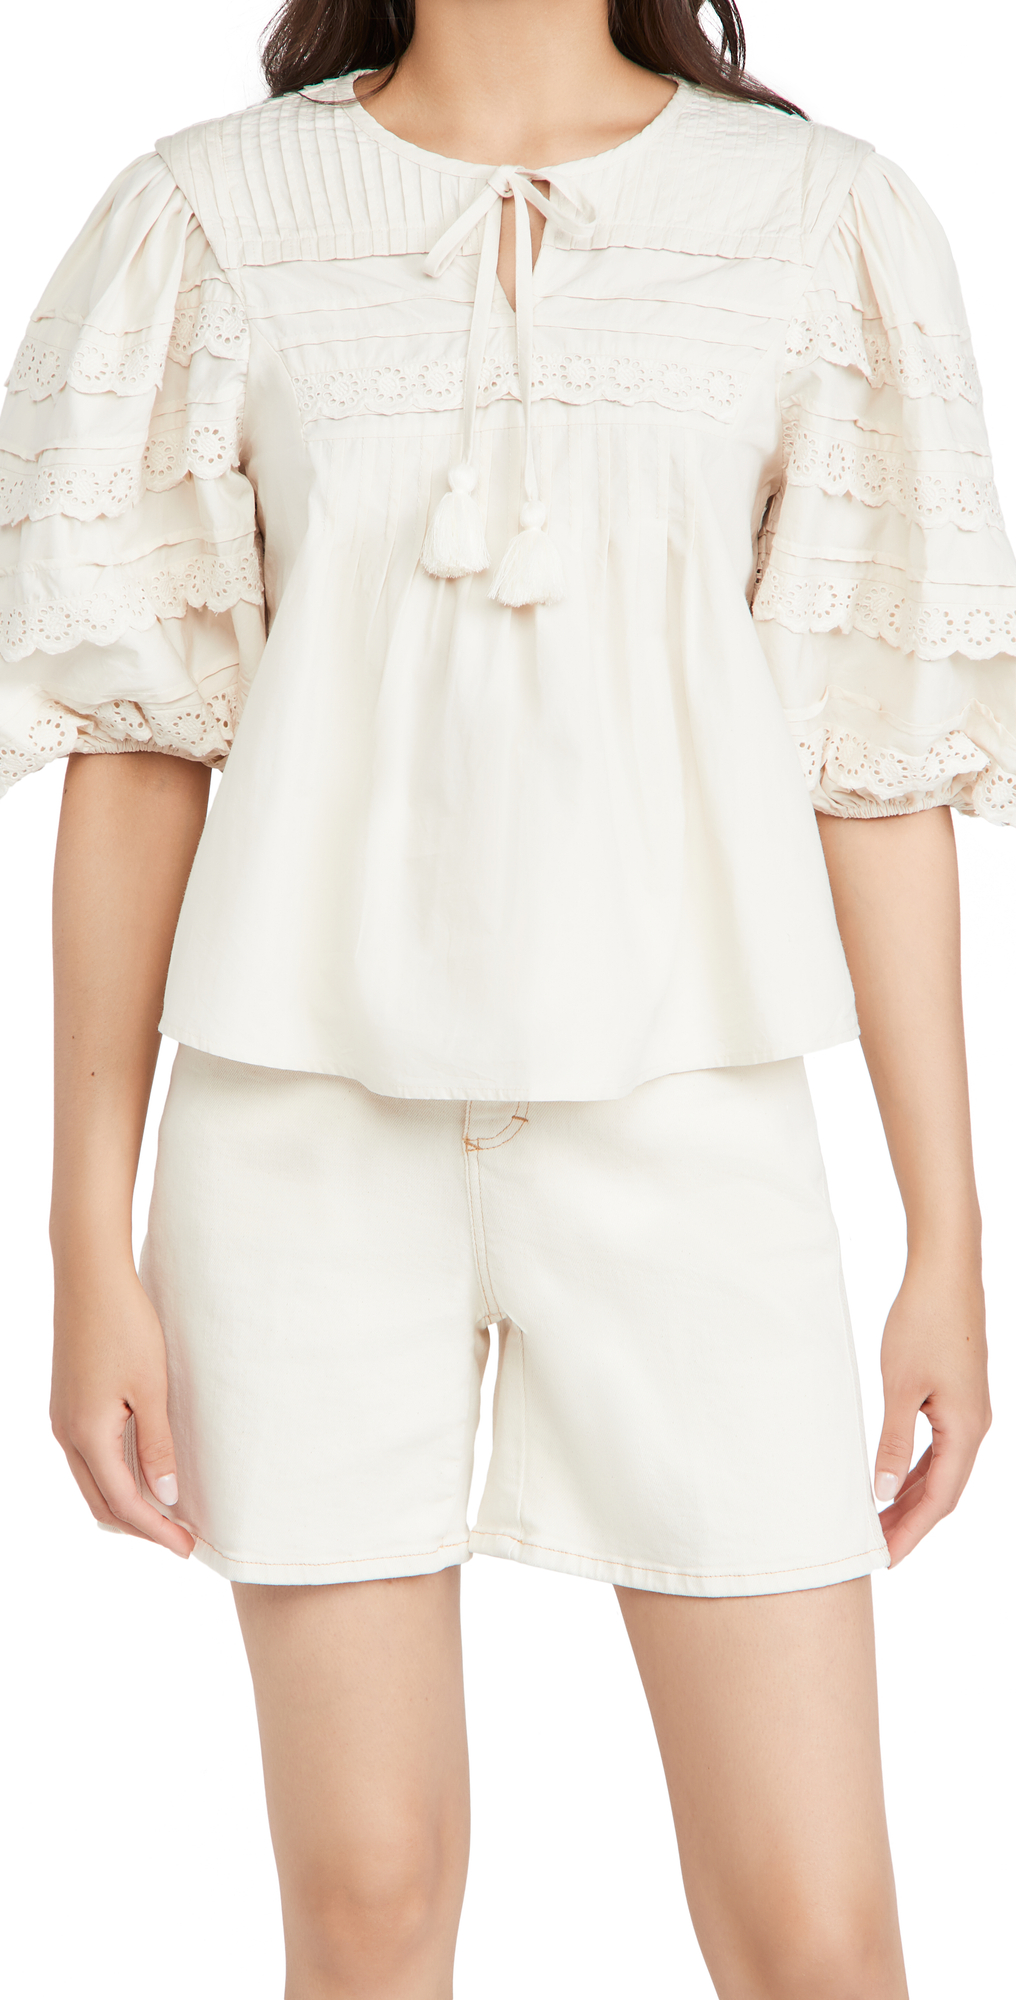 Sea Everleigh Tasseled Pleated Broderie Anglaise Cotton Blouse In Cream